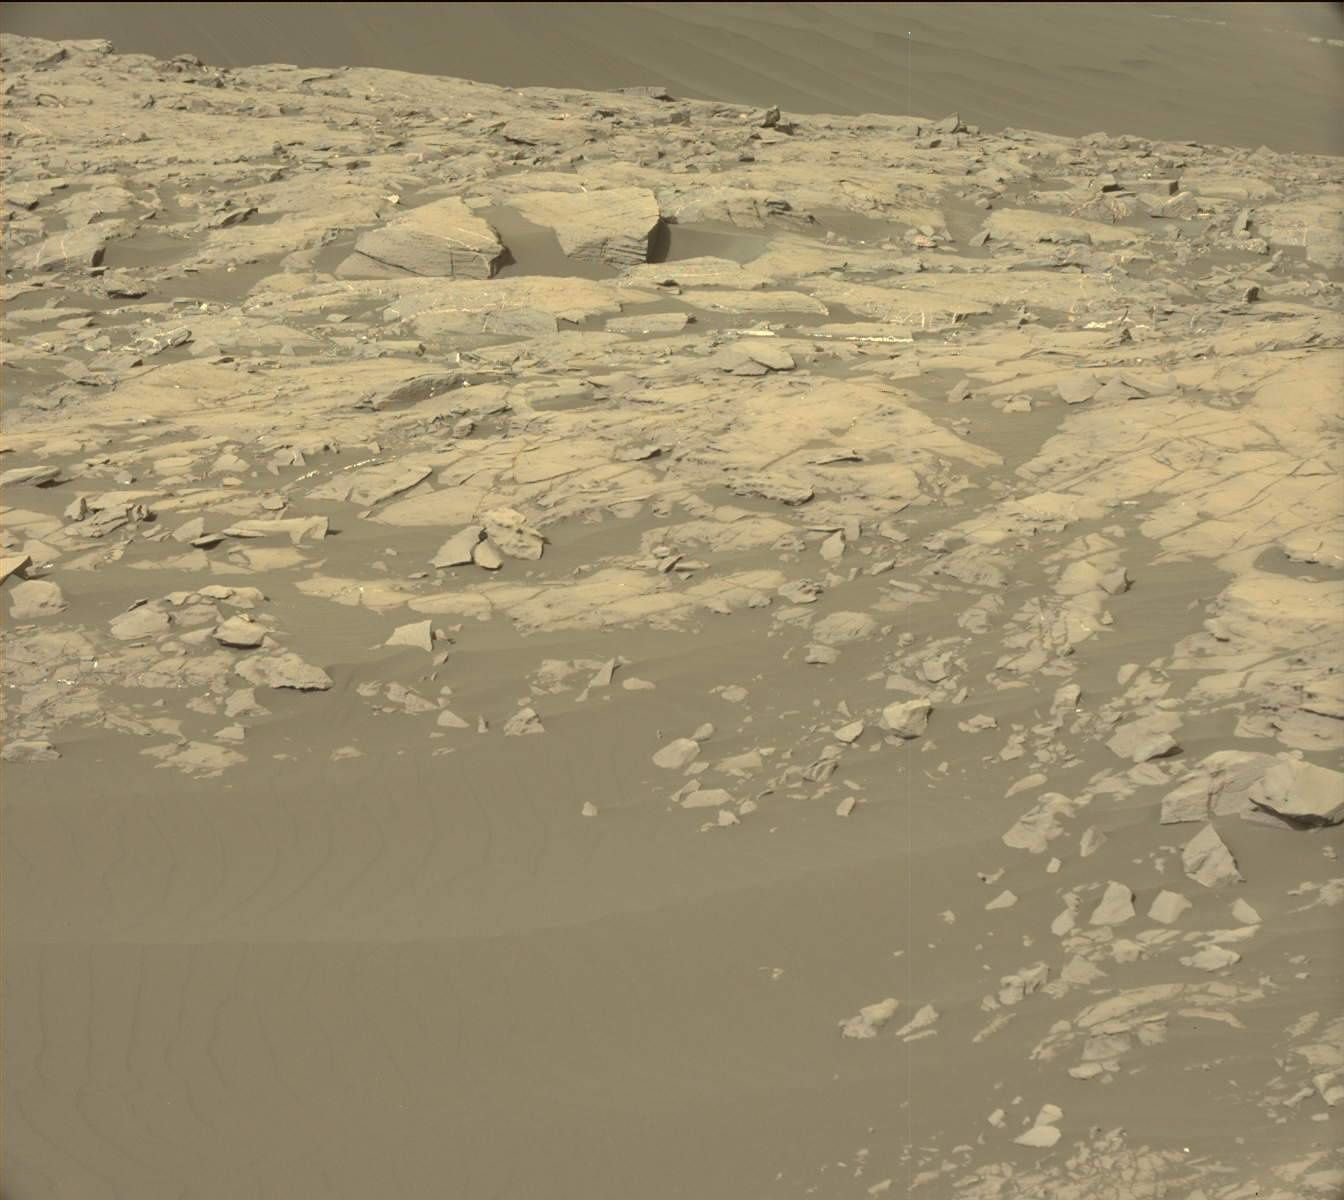 Photo originale Curiosity Nasa sur Mars